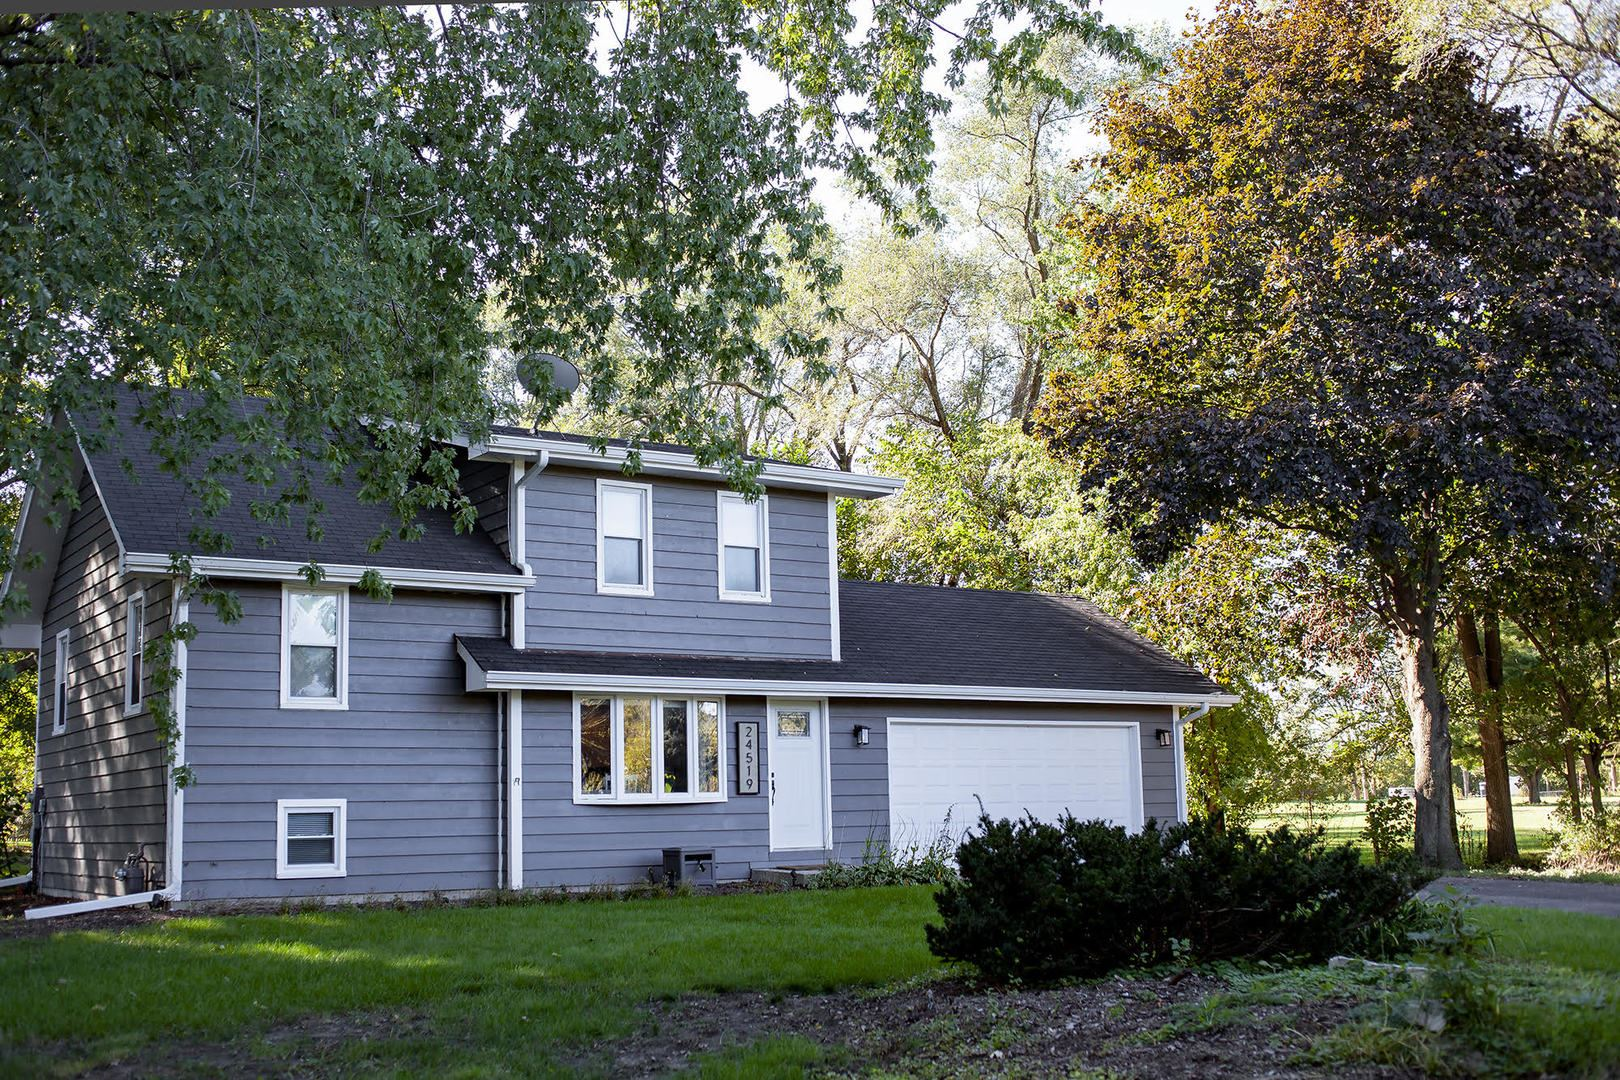 Photo of 24519 103rd Street, Naperville, IL 60564 (MLS # 11254106)